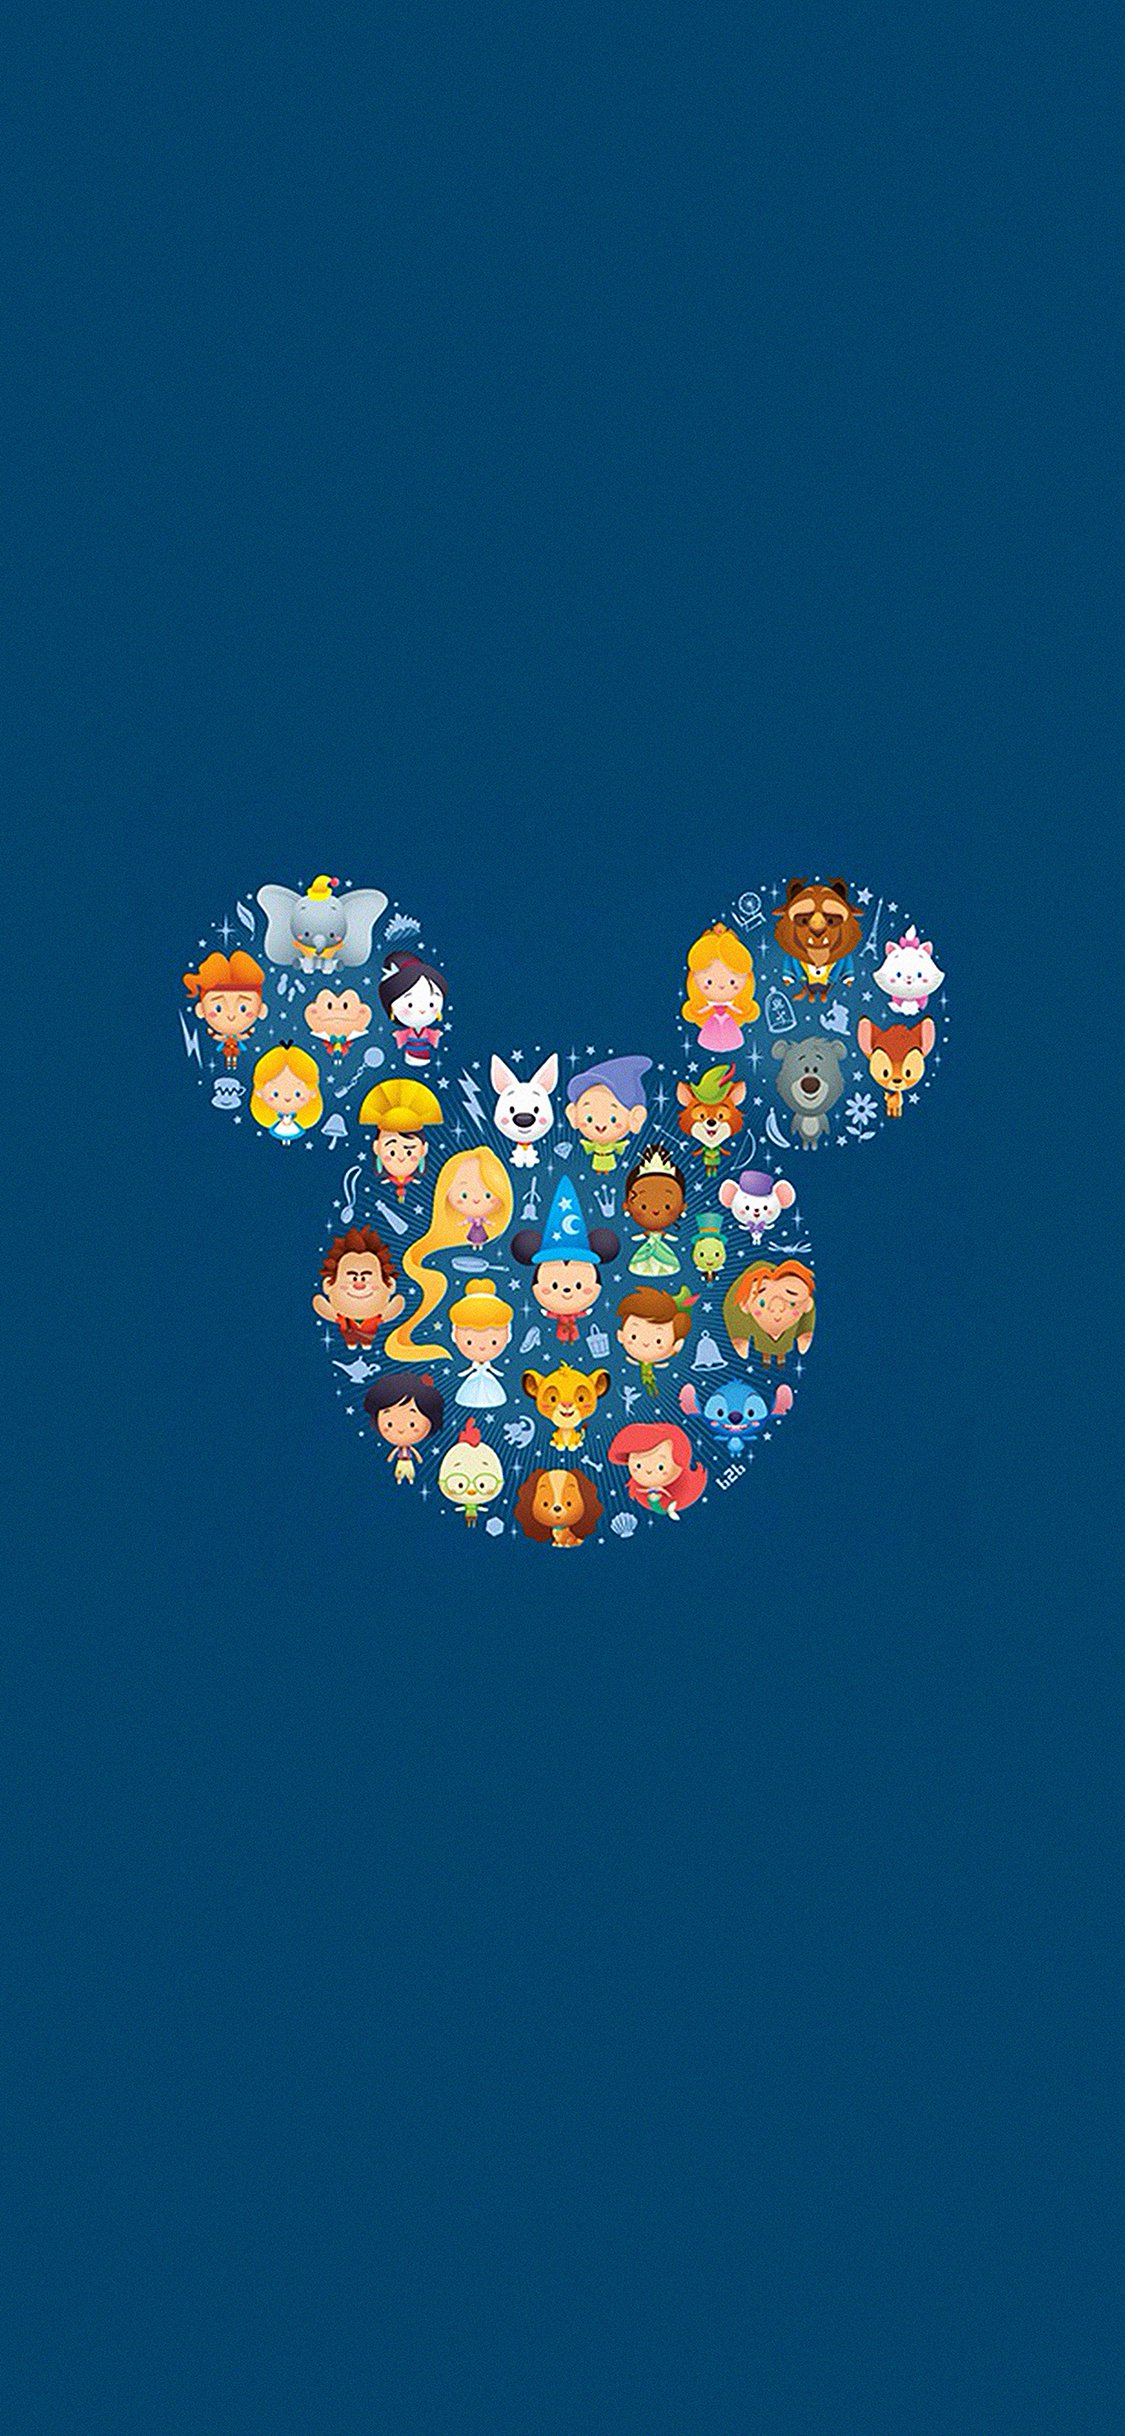 Disney art character cute iPhone wallpaper